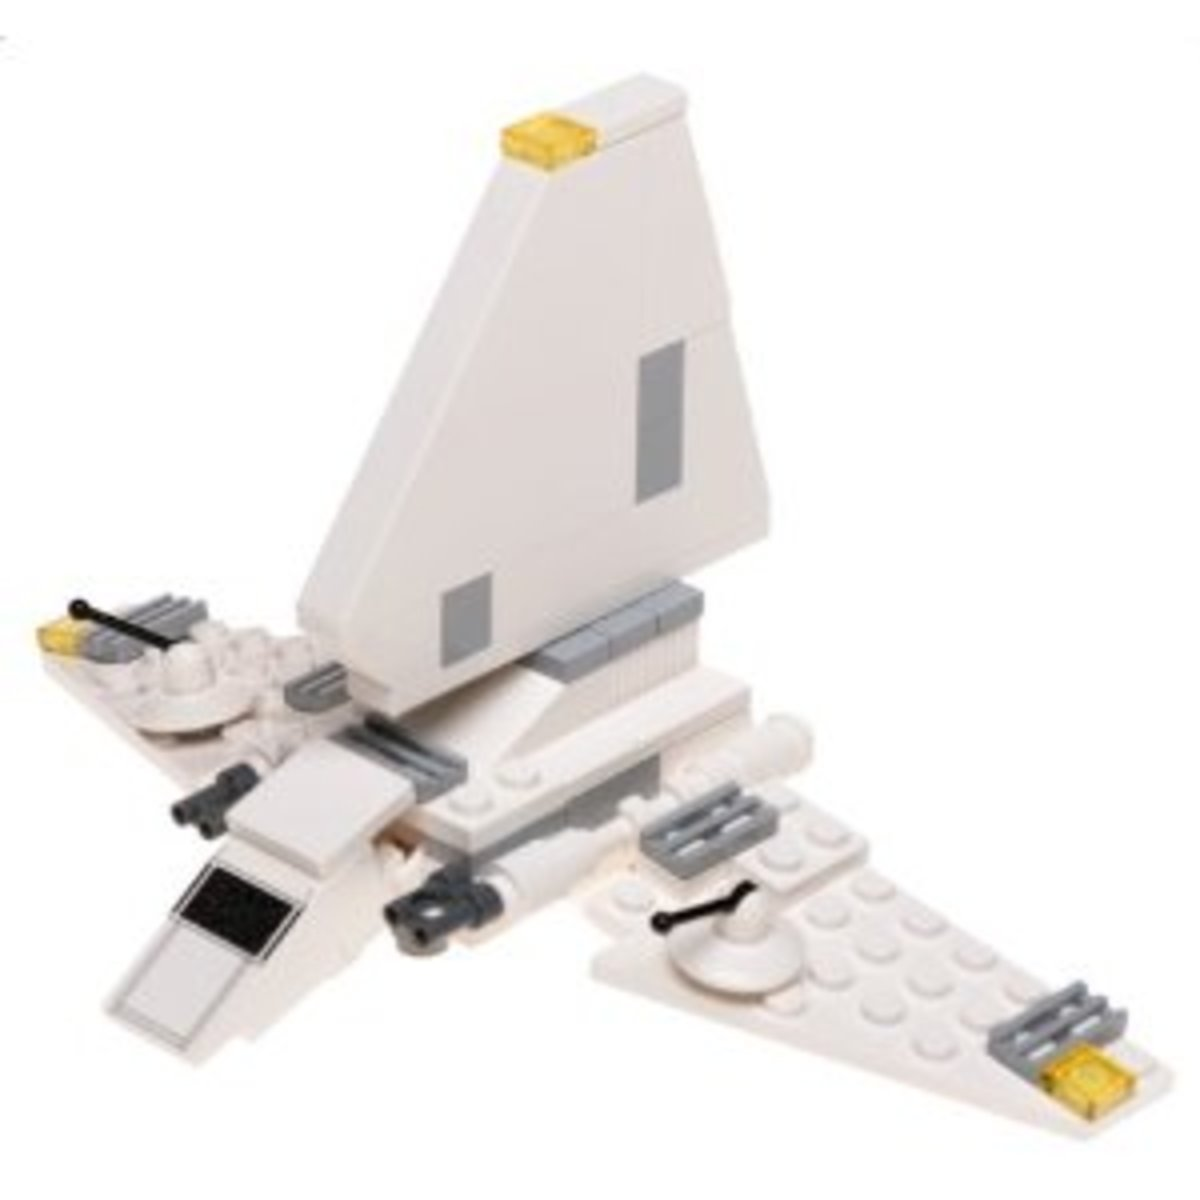 LEGO Star Wars Imperial Shuttle 4494 Assembled